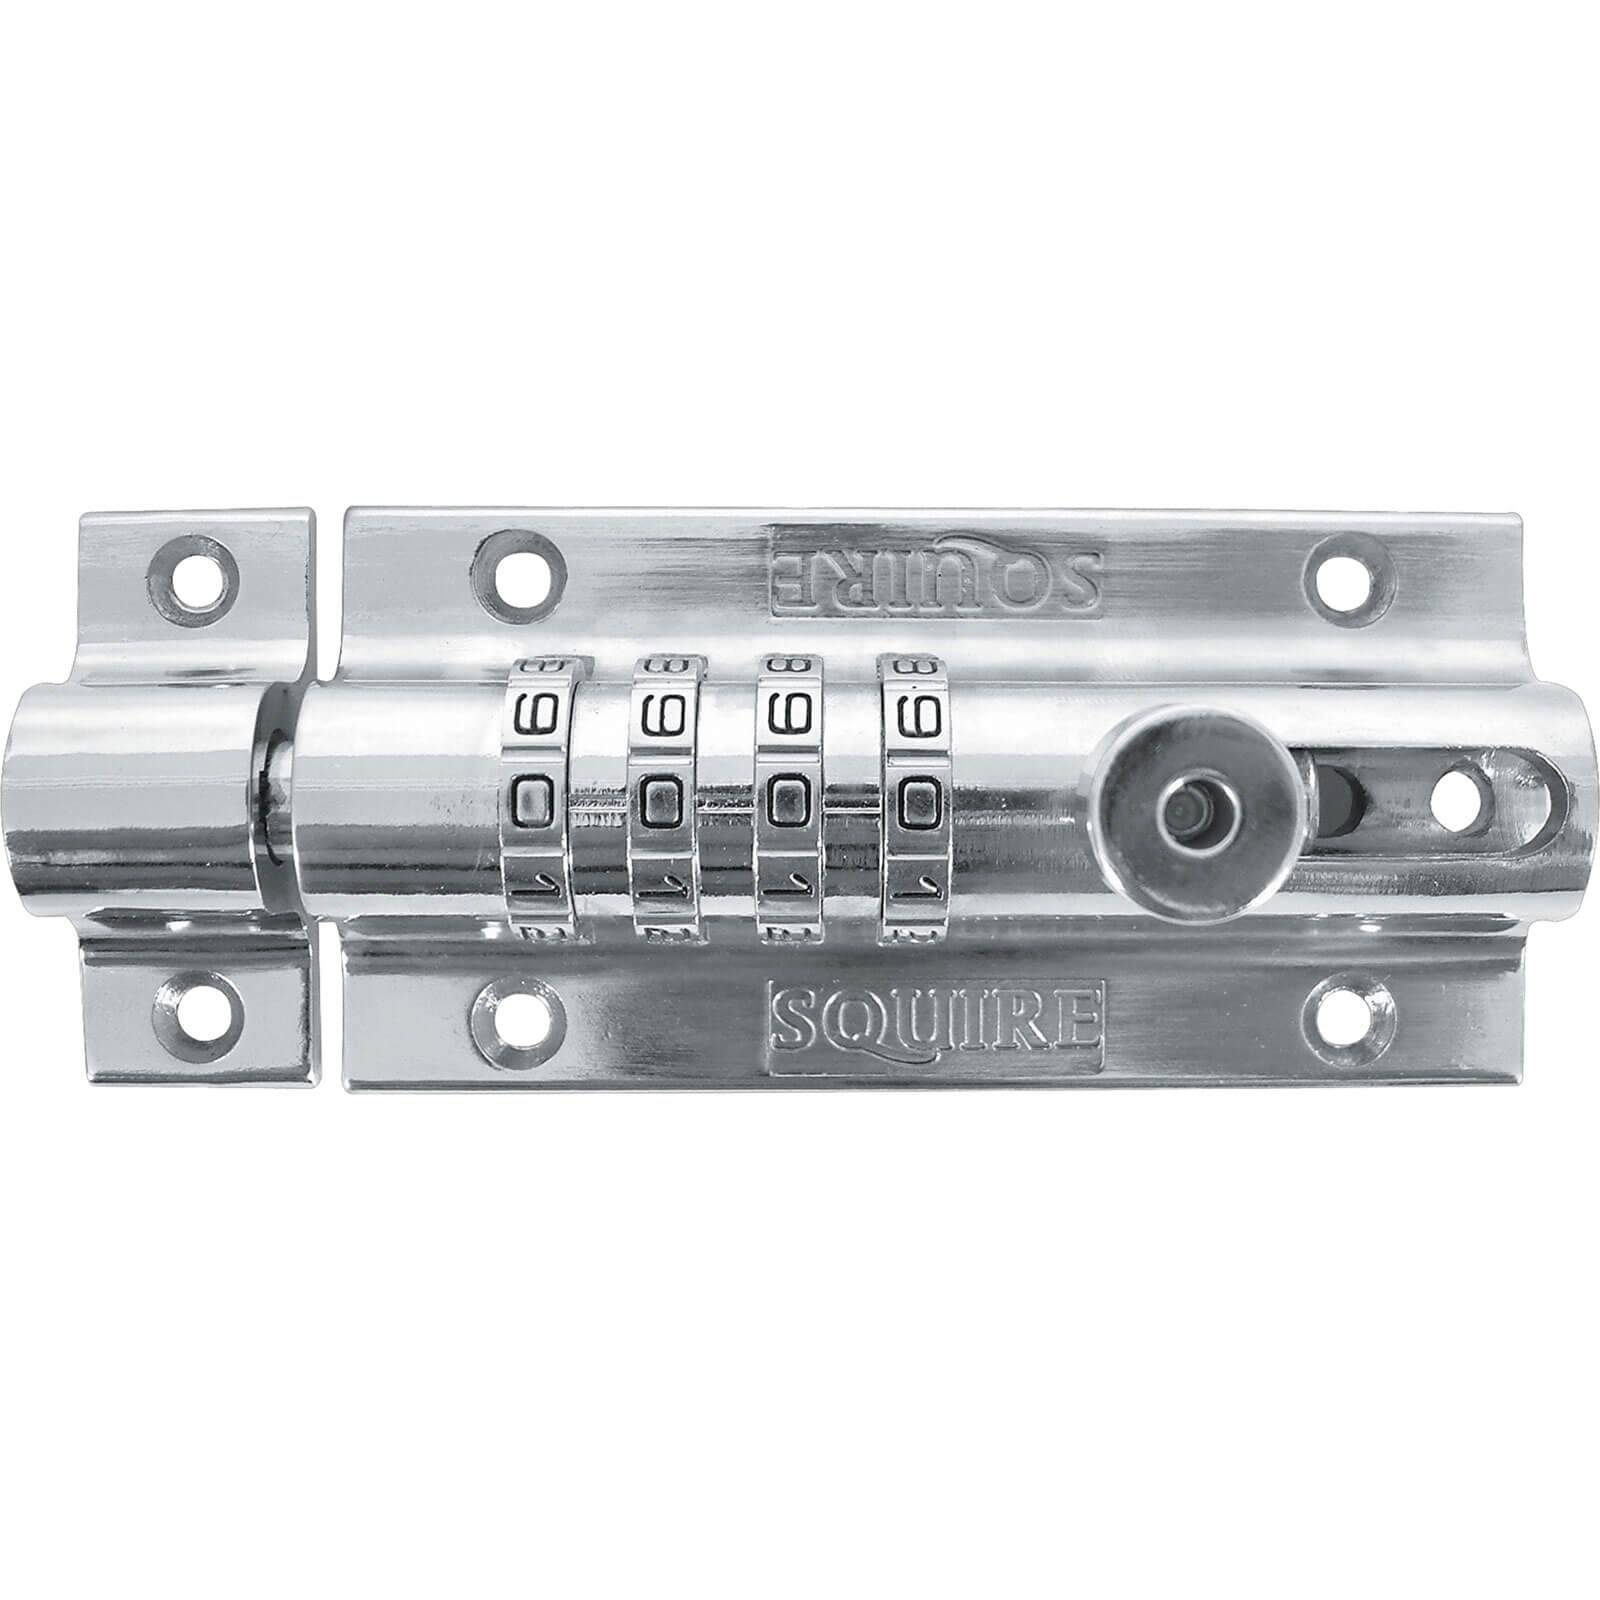 Image of Henry Squire Combi 2 Locking Bolt Chrome